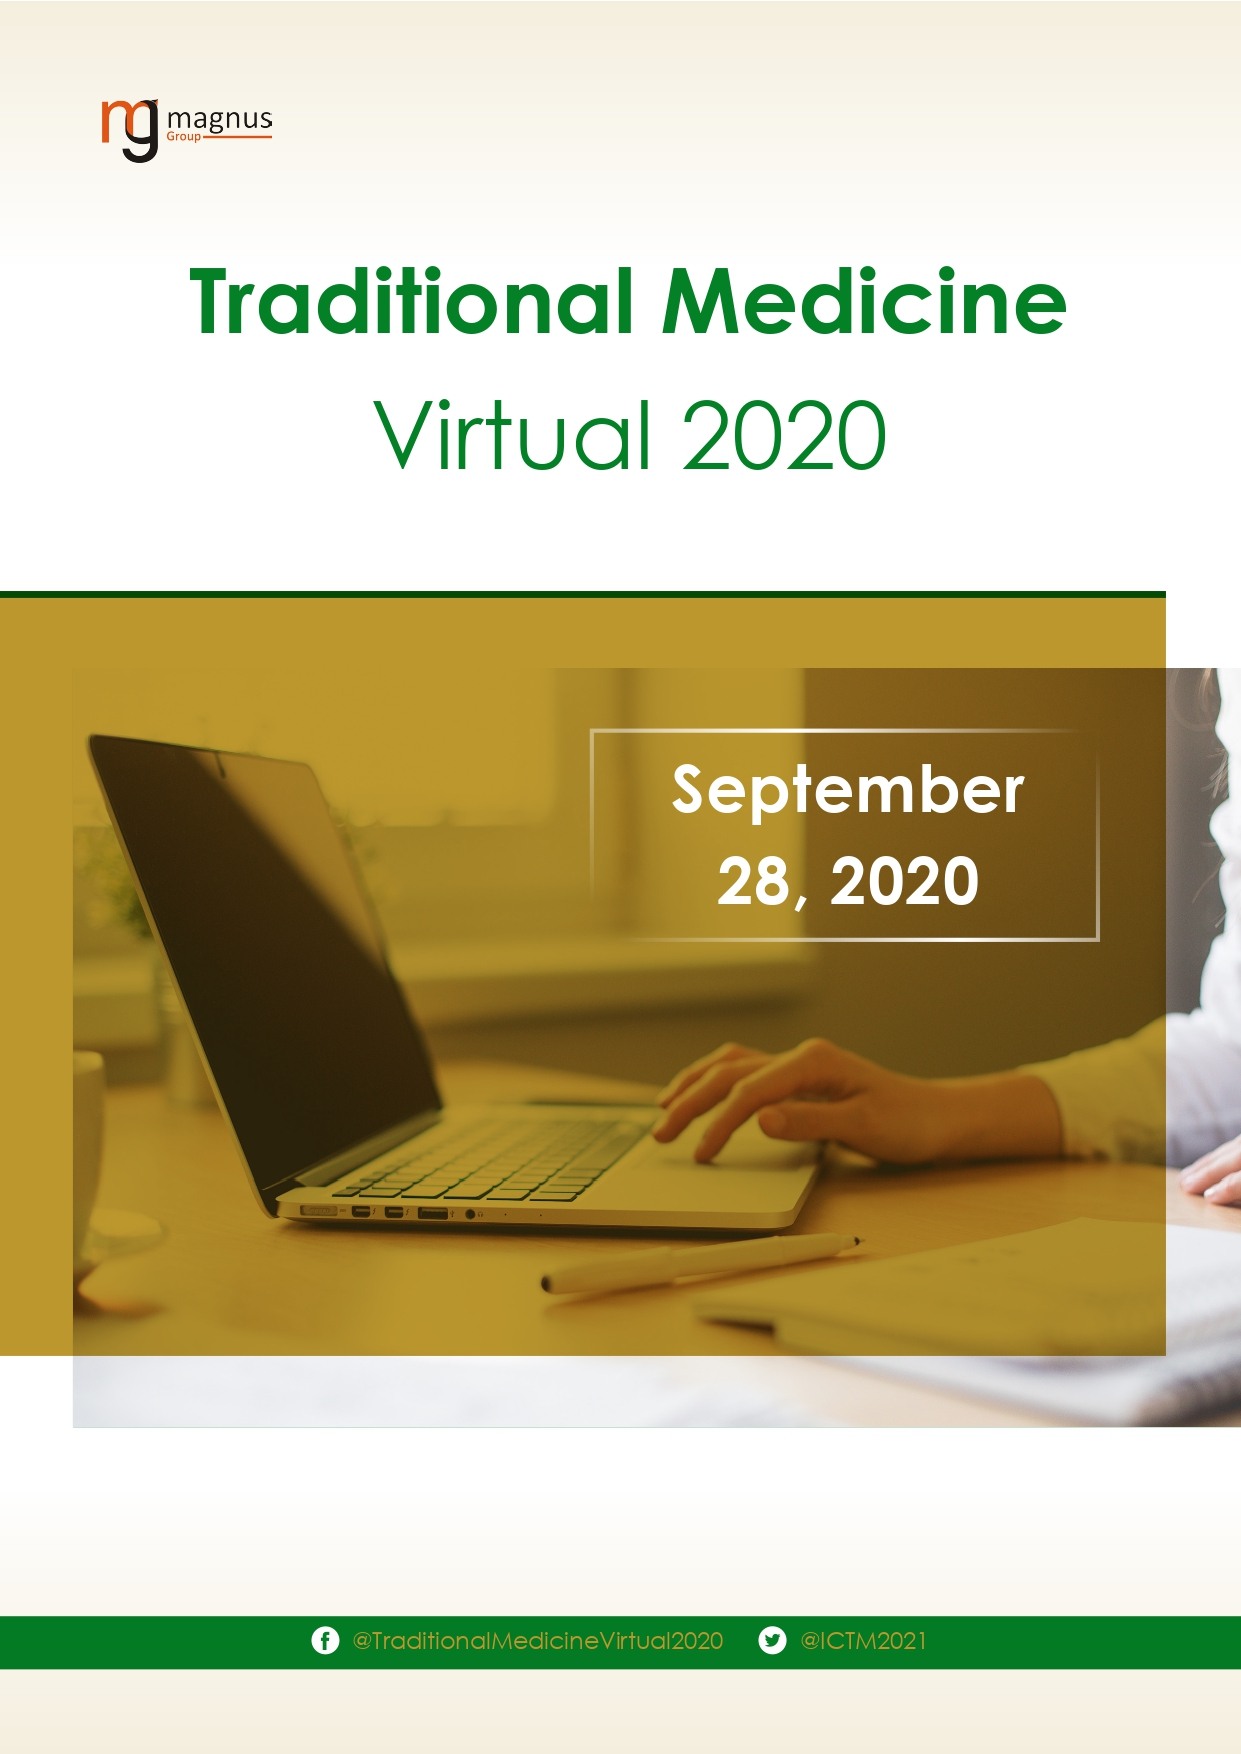 International Webinar on Traditional Medicine, Ethnomedicine and Natural Therapies | Online Event Book